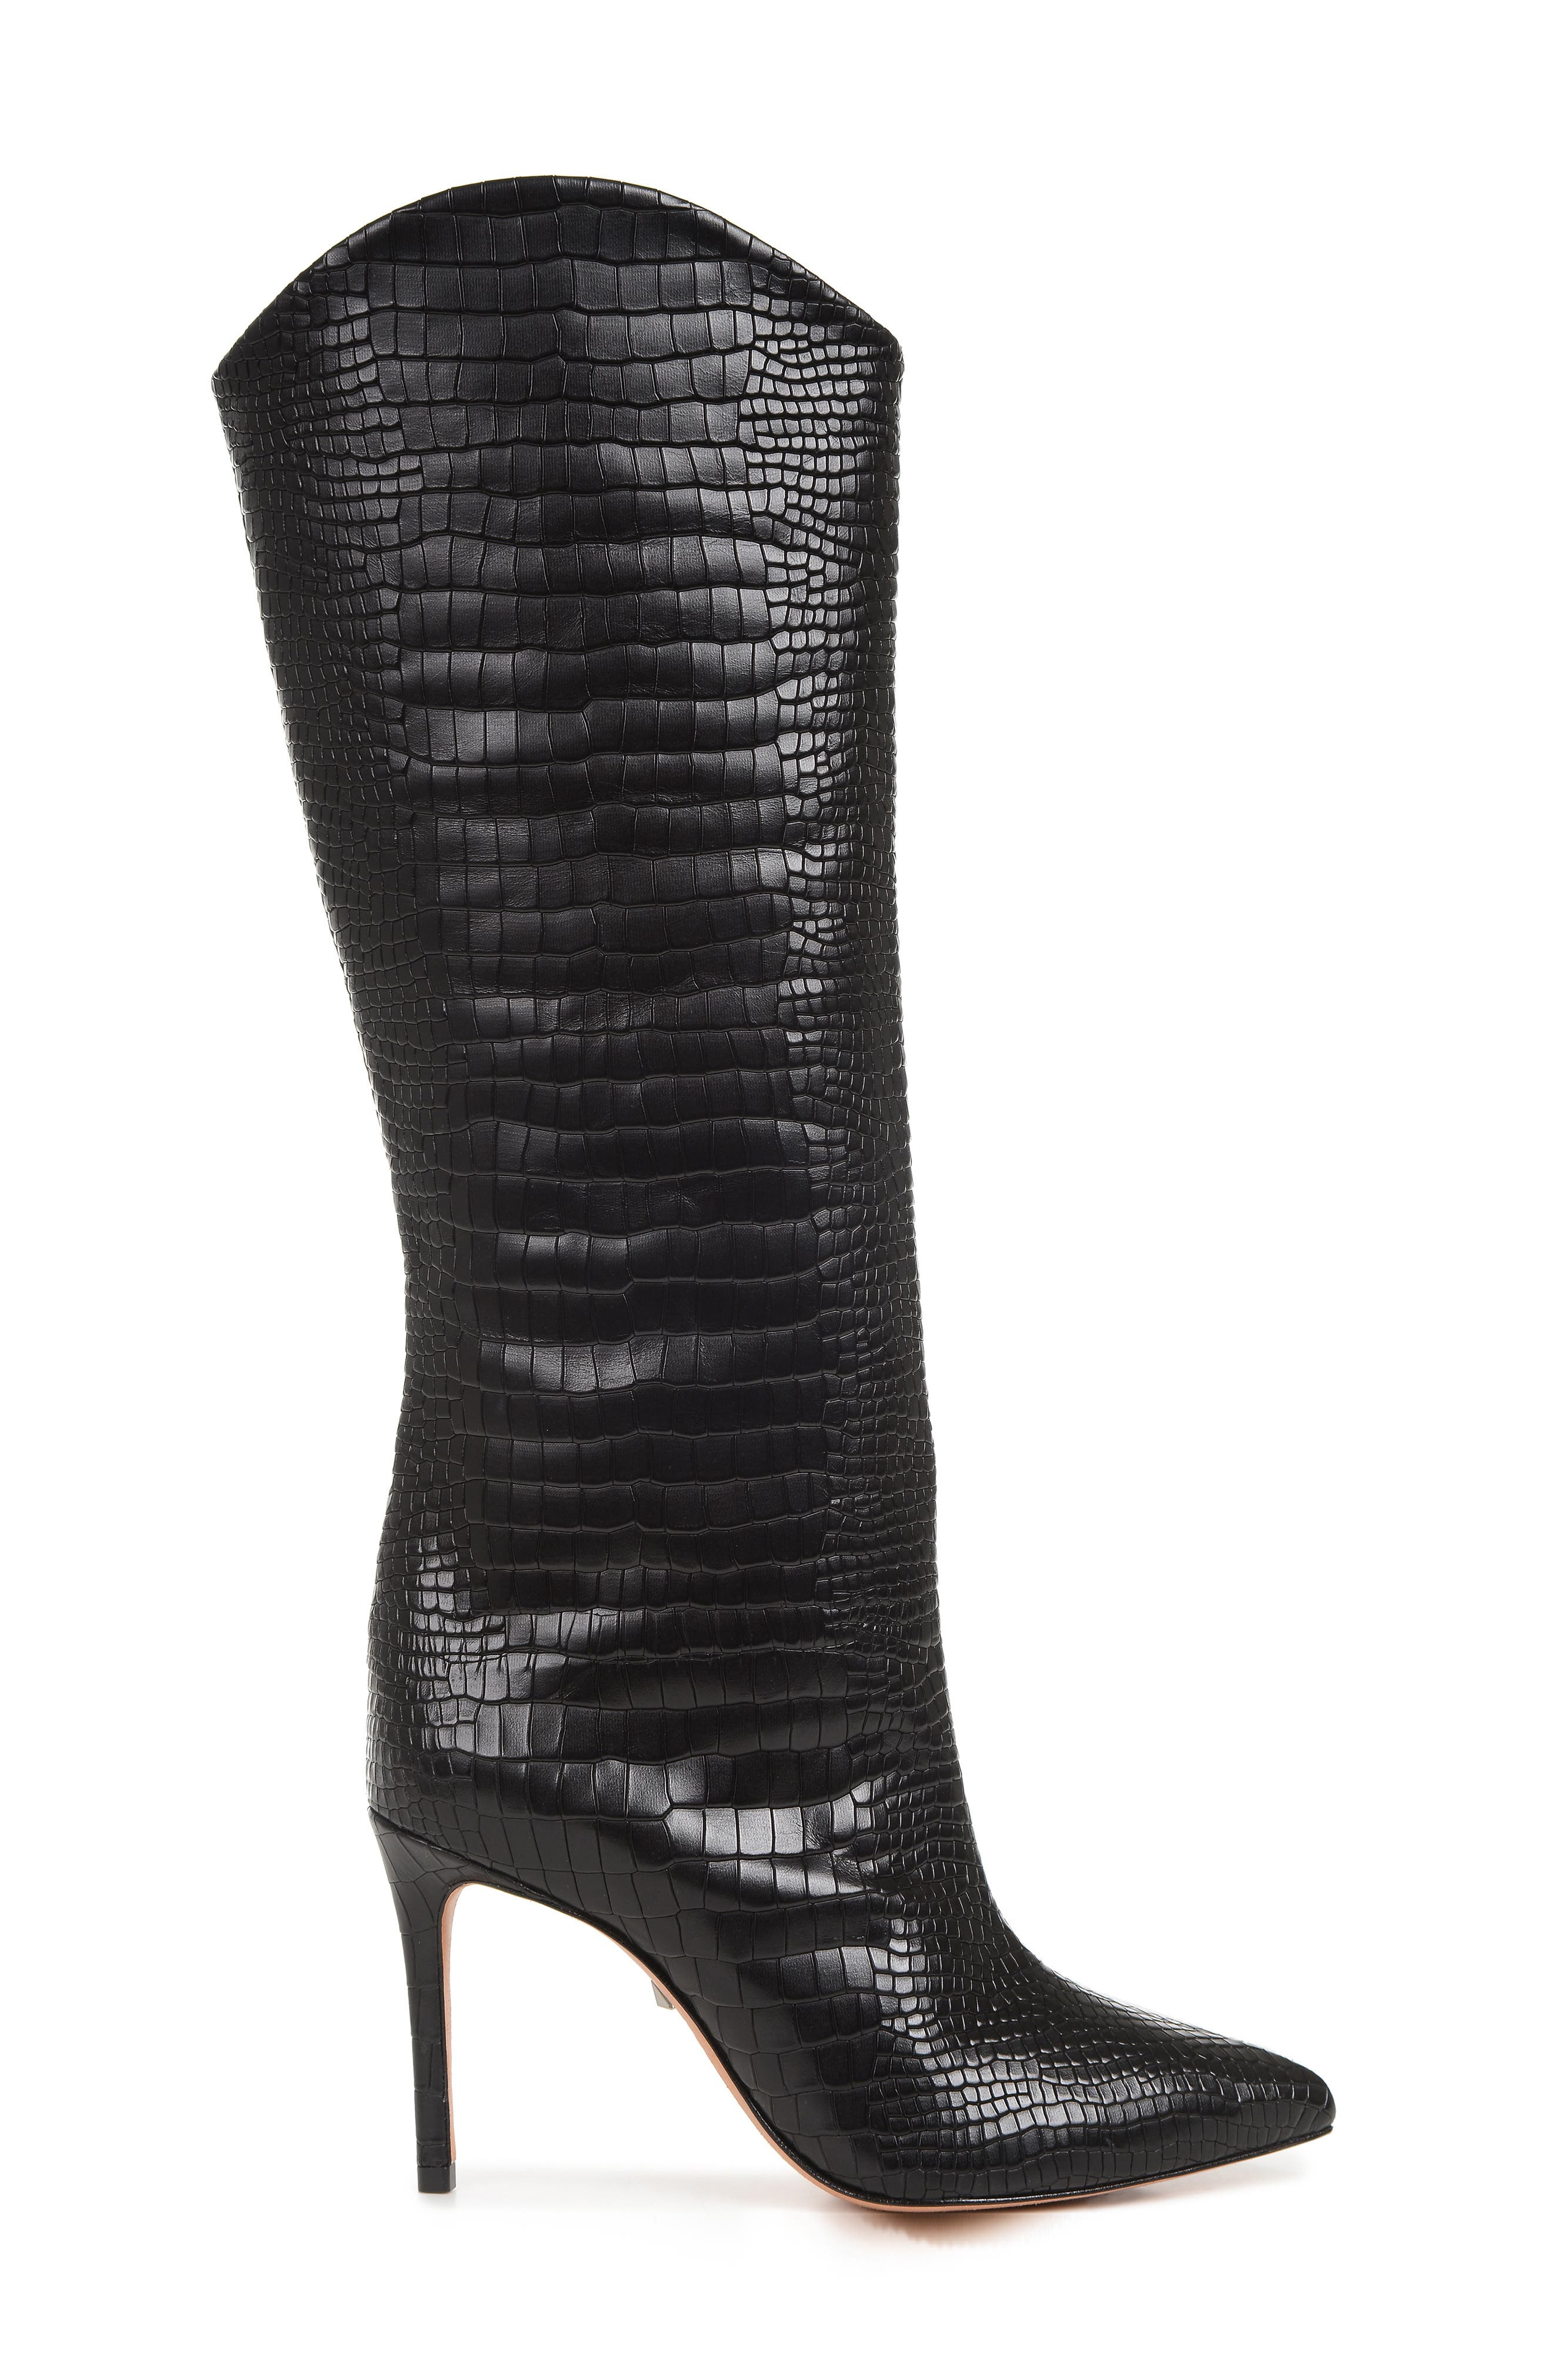 SCHUTZ,                             Maryana Pointy Toe Boot,                             Alternate thumbnail 3, color,                             BLACK LEATHER